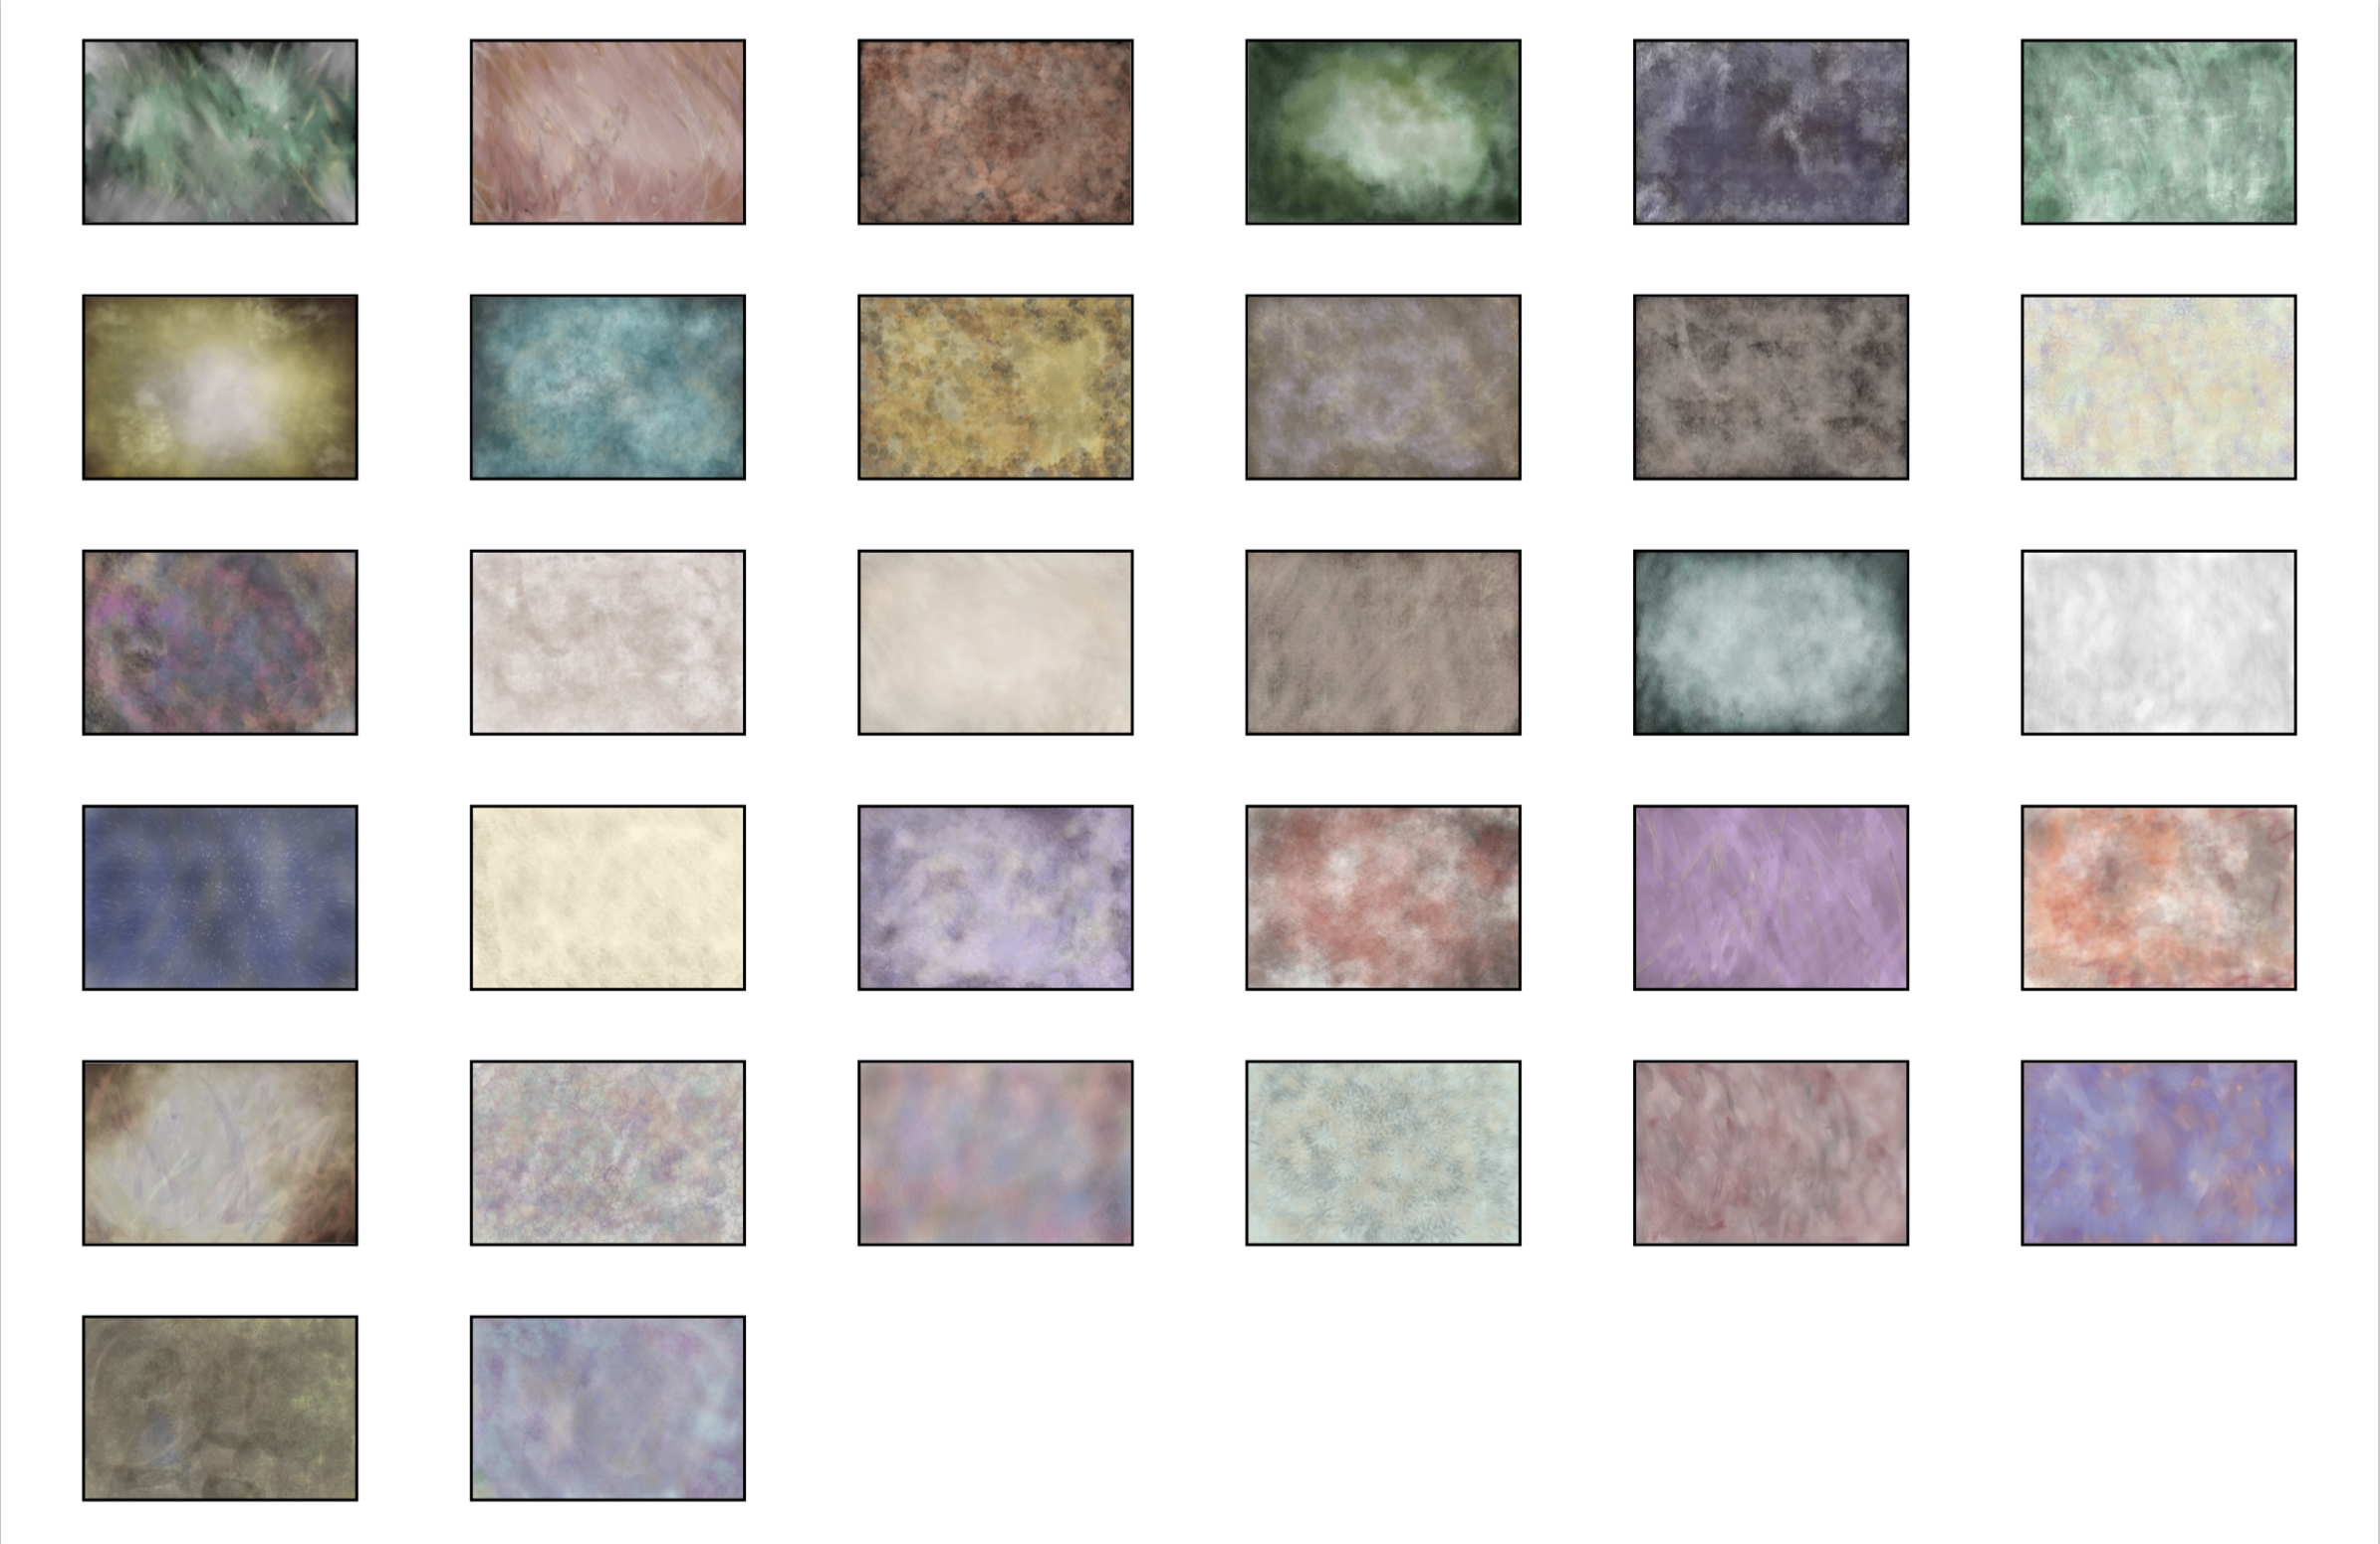 Royalty-free texture images